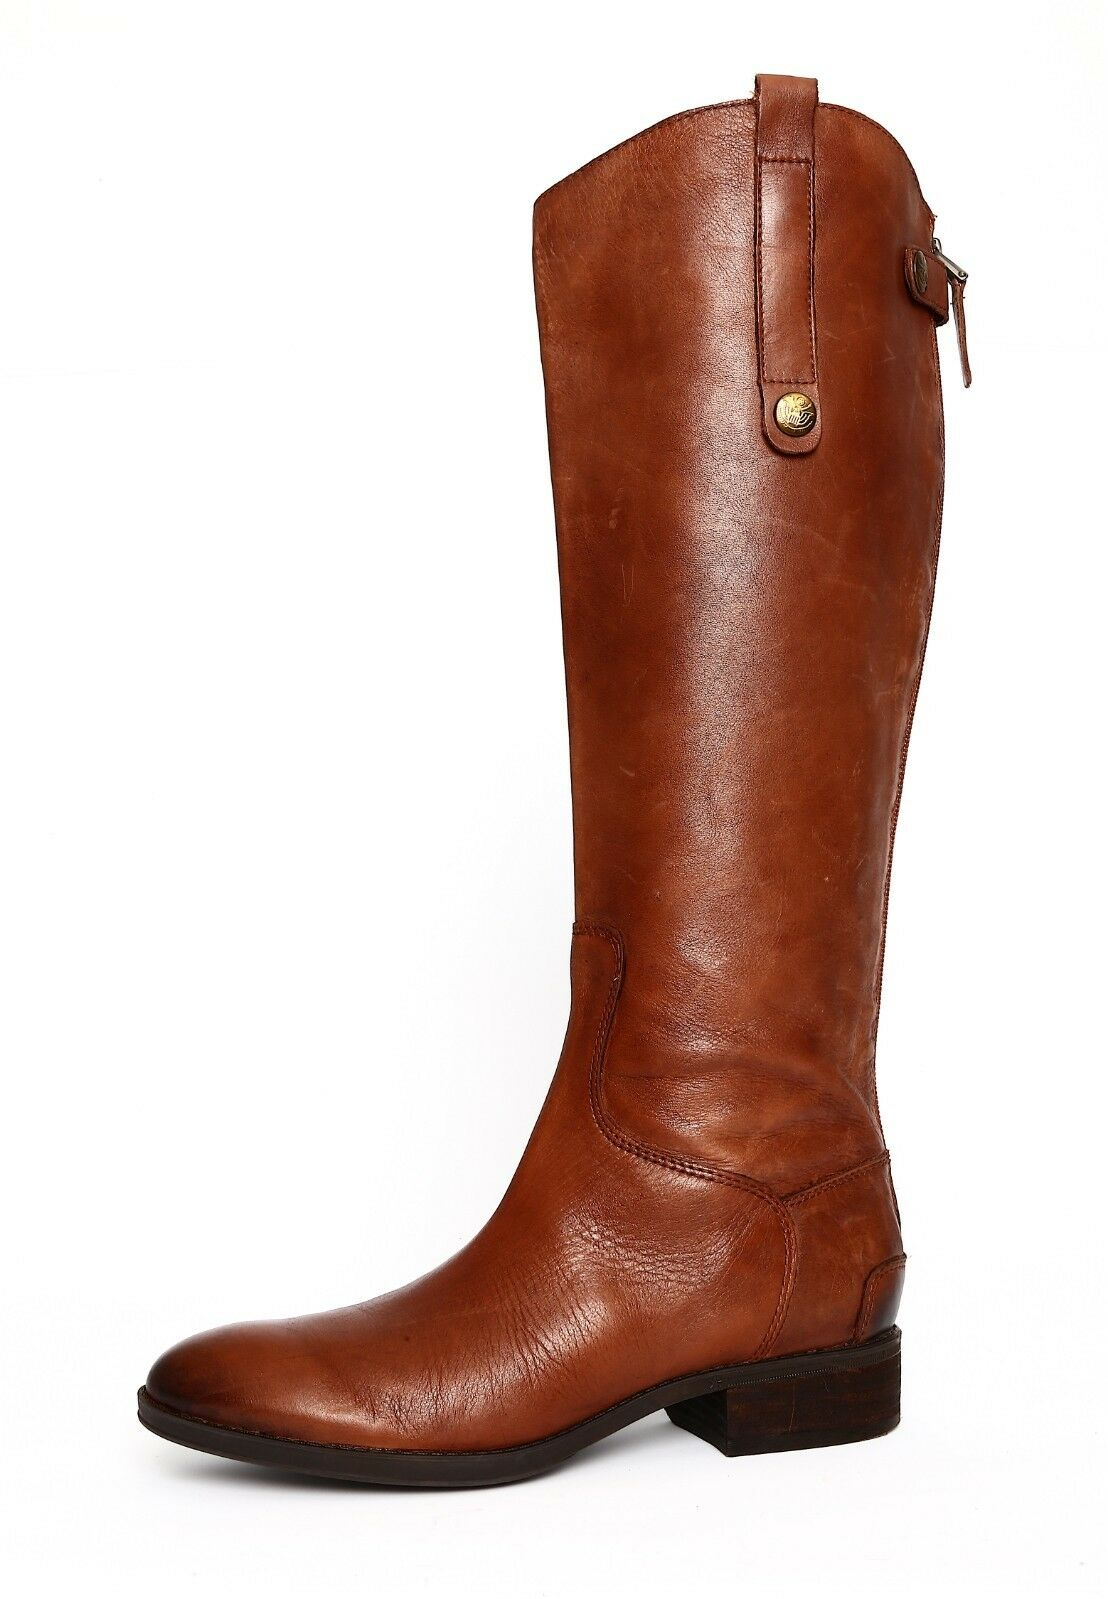 Sam Edelman Penny2 Donna Brown Pelle Boot Sz 6.5 2855 *